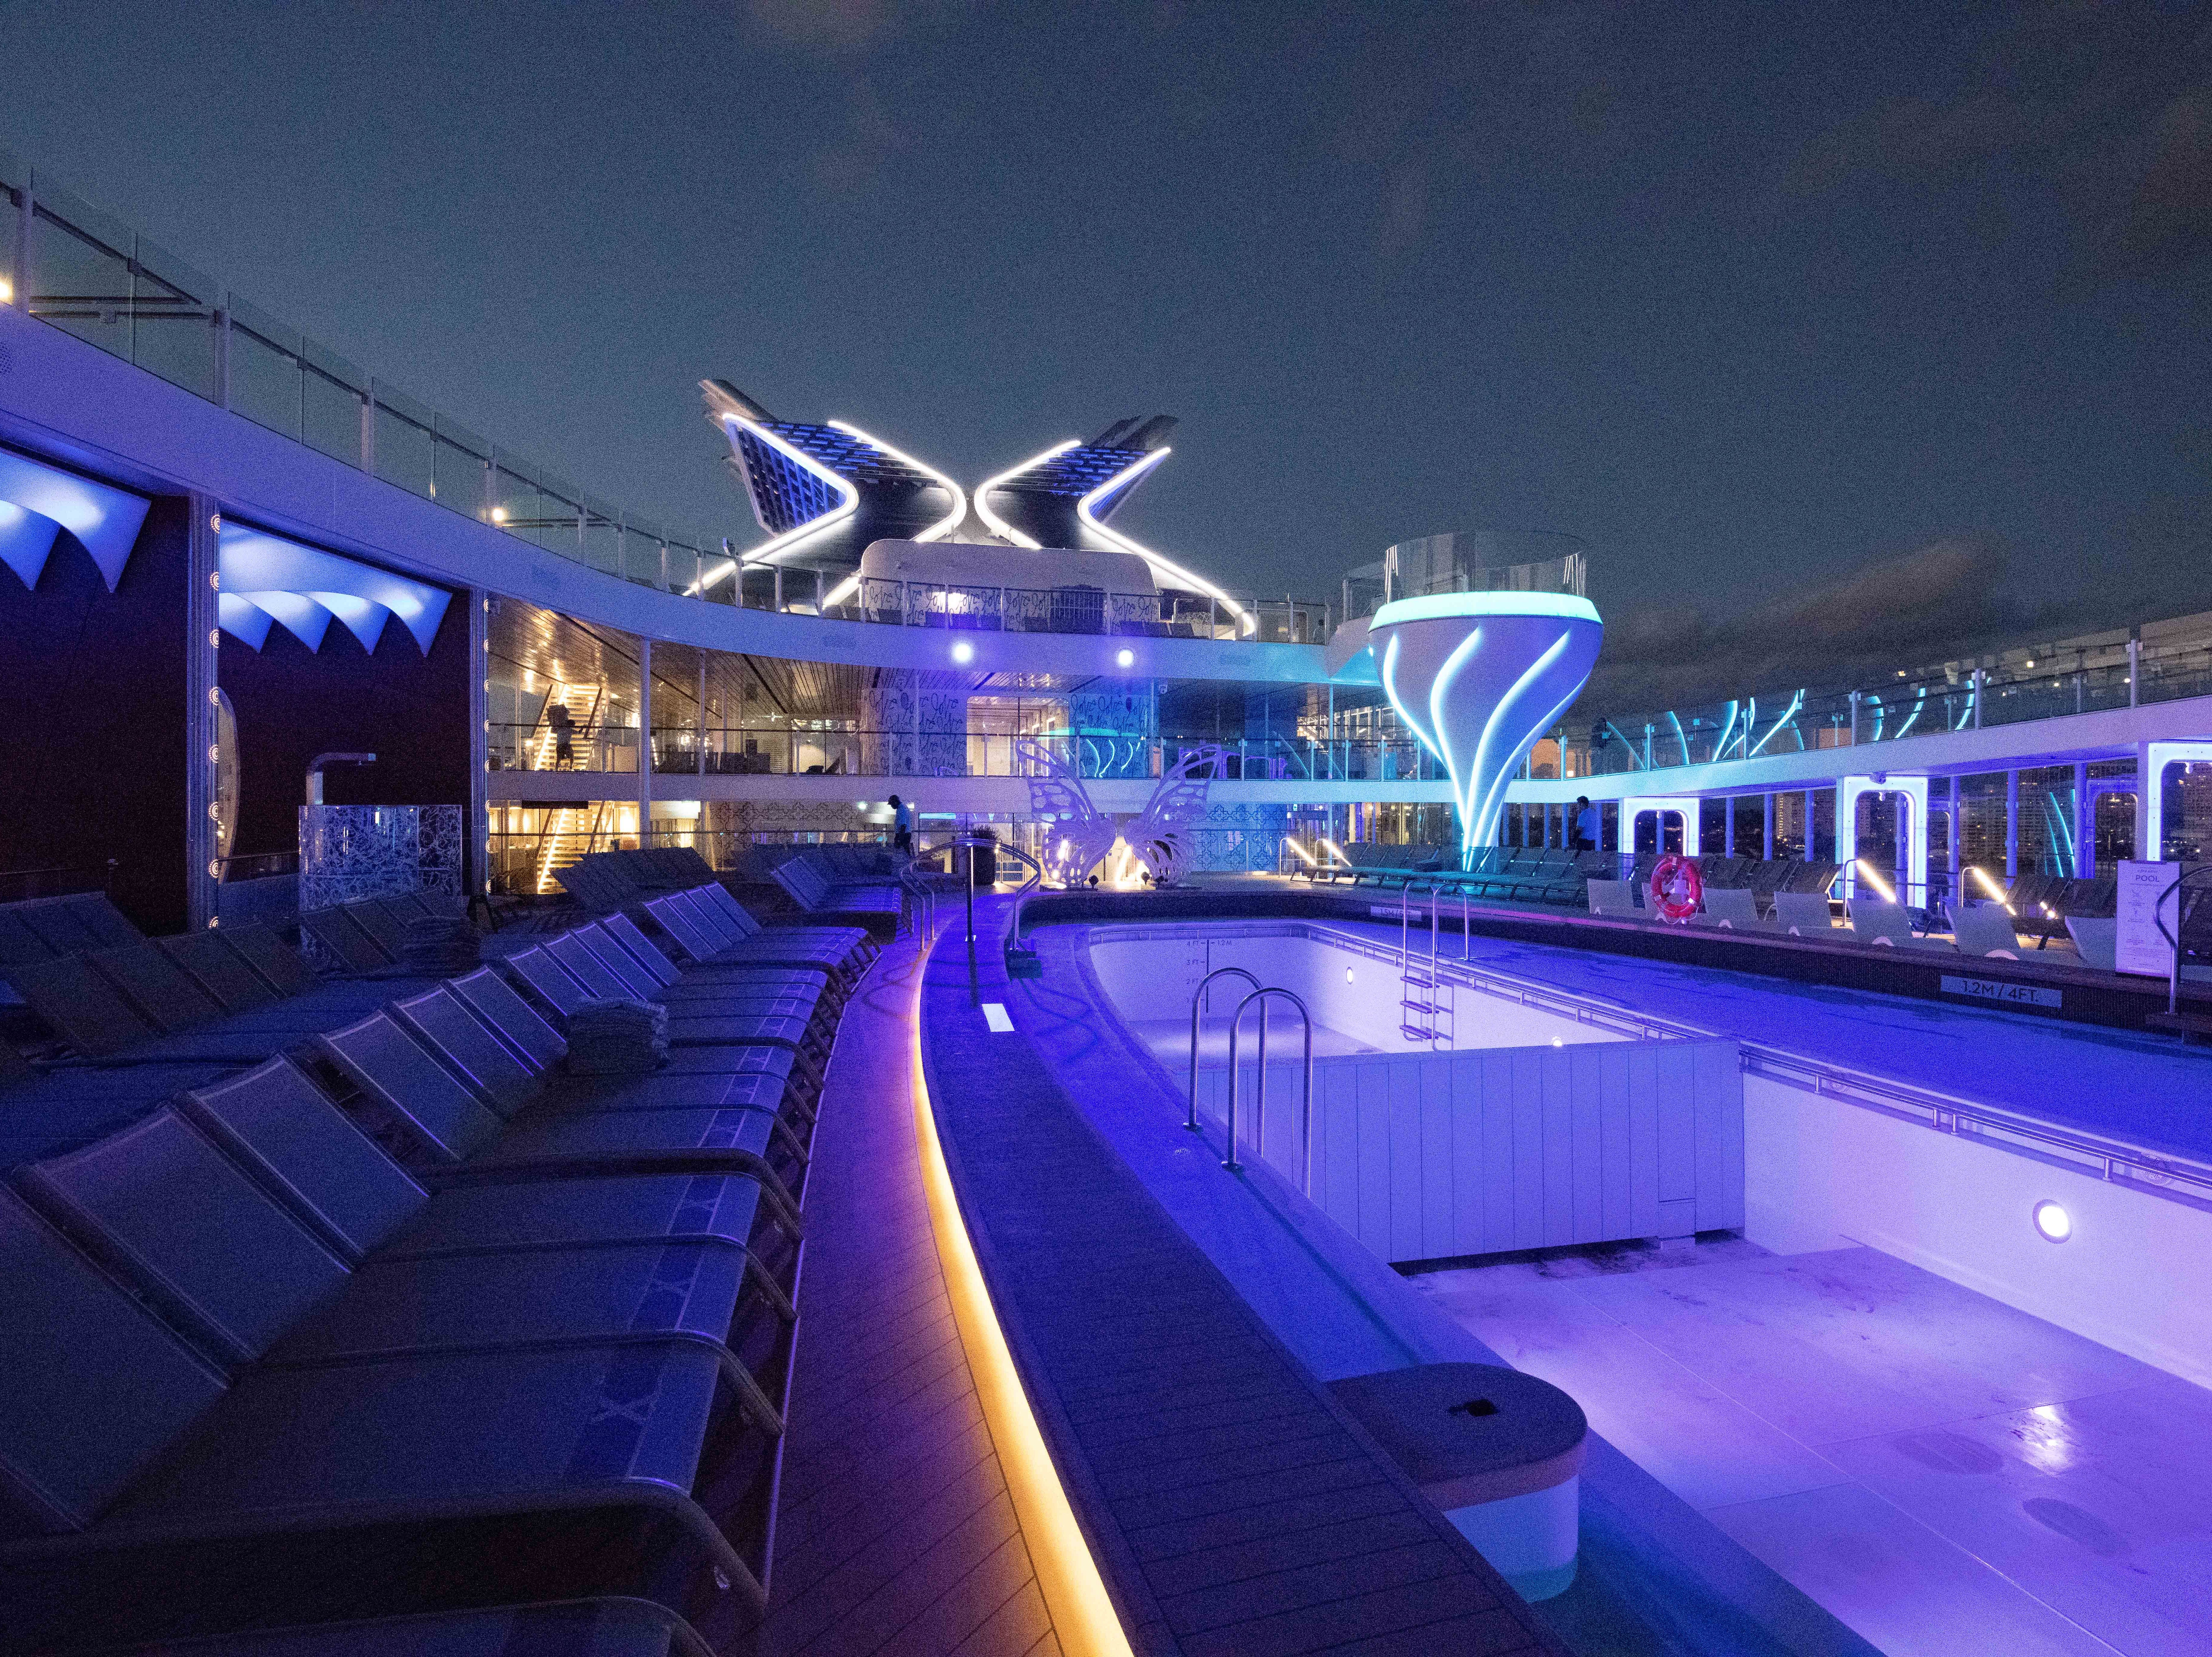 The celebrity Edge pool deck at night.